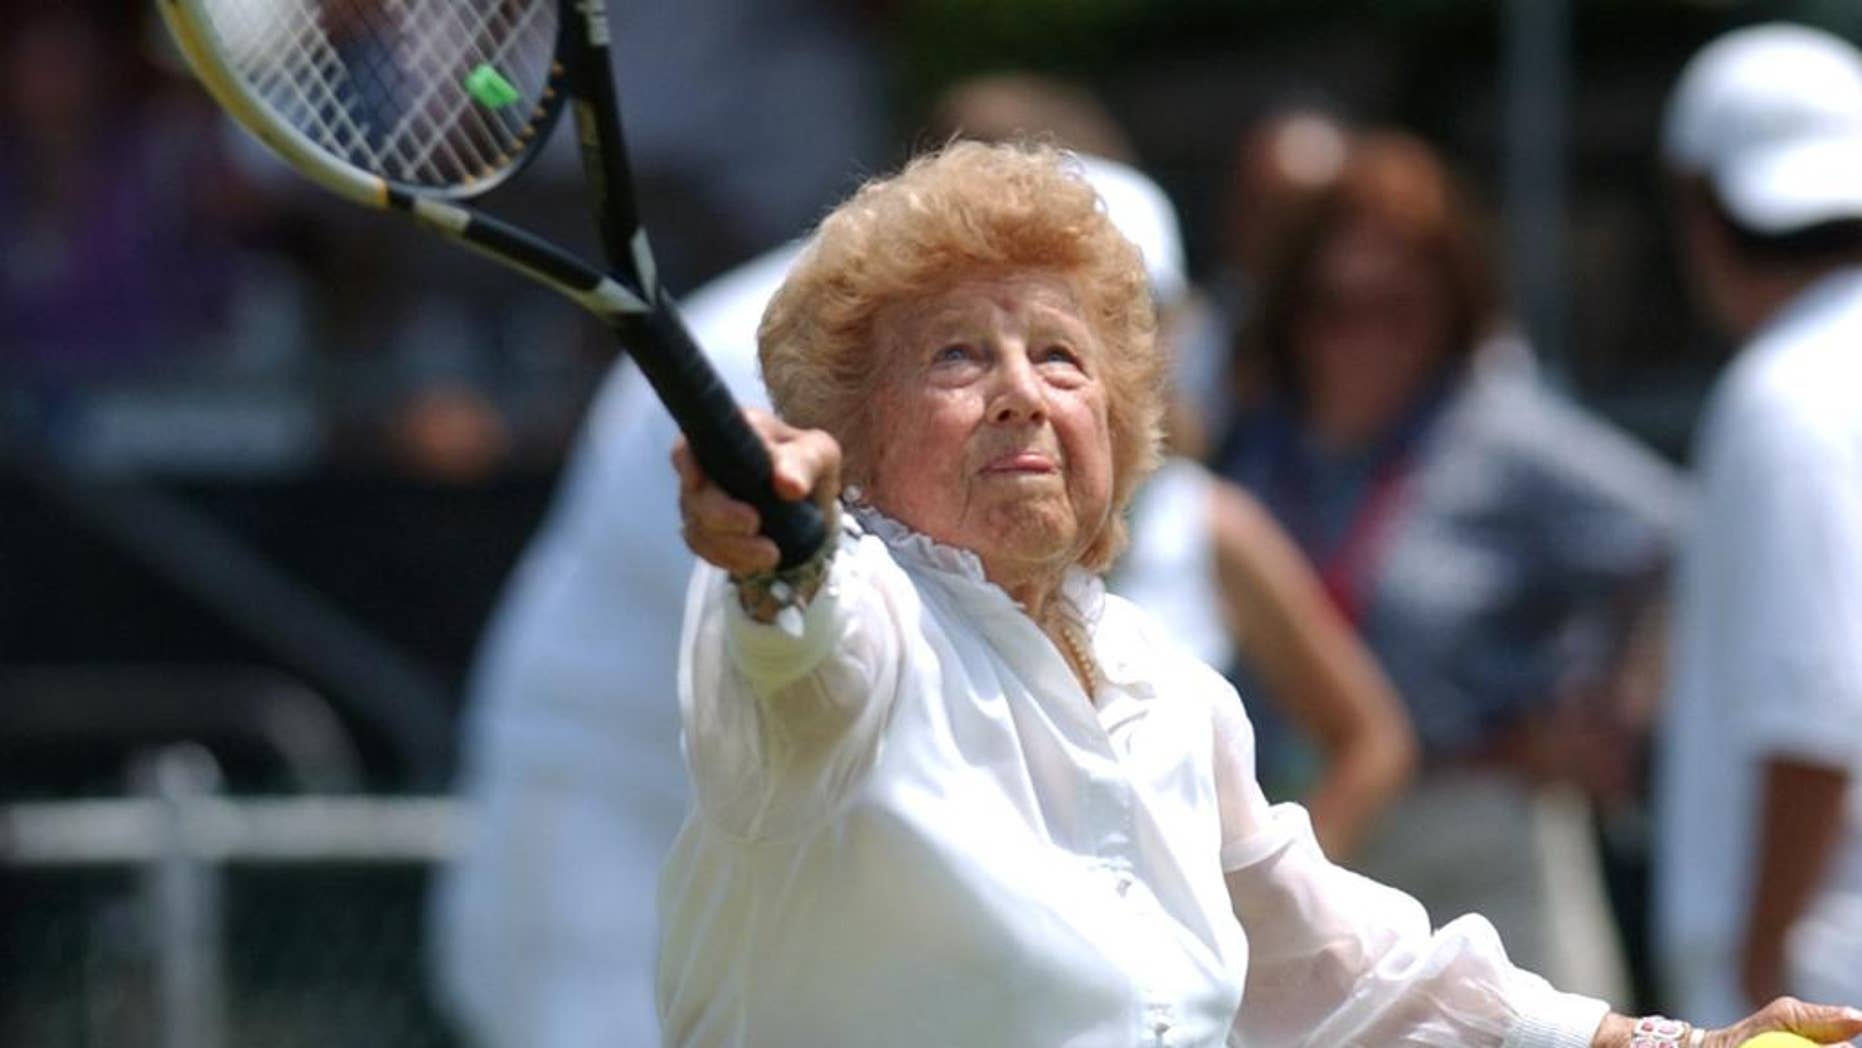 """FILE - In this July 10, 2004, file photo, Tennis great Dorothy """"Dodo"""" Cheney, 87, of Santa Monica, Calif., plays during an exhibition match prior to ceremonies celebrating the 50th anniversary of the Tennis Hall of Fame in Newport, R.I. The International Tennis Hall of Fame says Cheney, a member of the Hall and the first American woman to win the tournament now known as the Australian Open, has died at age 98. The Hall says Tuesday, Nov. 25, 2014, that Cheney died Sunday in Escondido, Calif., following a brief illness. (AP Photo/Victoria Arocho, File)"""